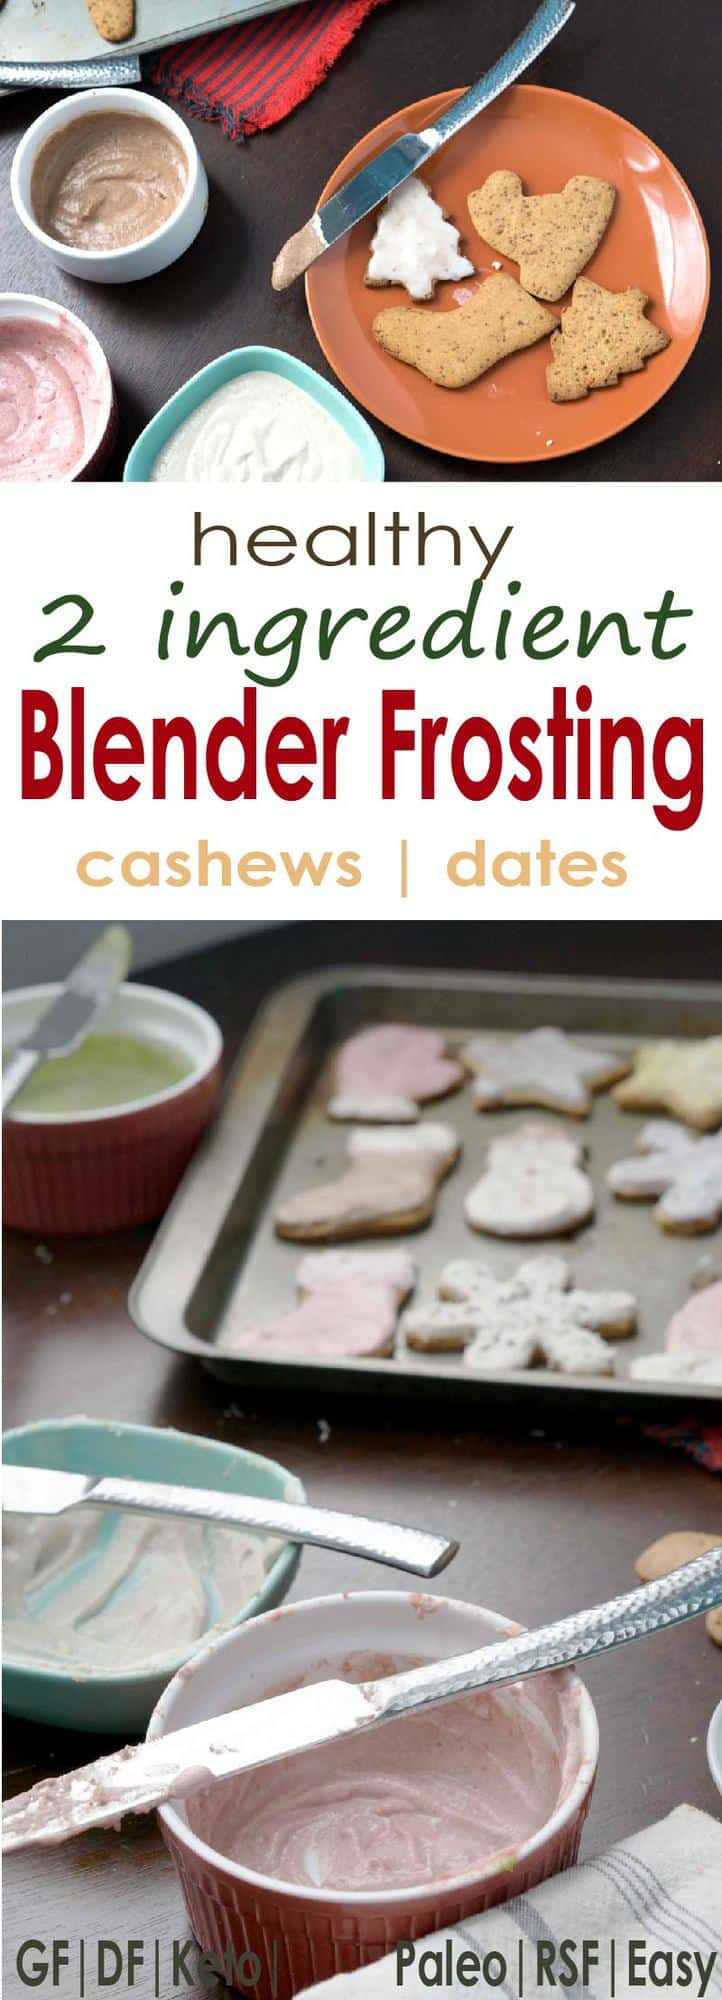 Finally, a cut-out cookie frosting without powdered sugar! With just 2 ingredients, this healthy, paleo and naturally colored blender frosting is ready in just minutes. #glutenfree #dairyfree #paleo #keto #sugarfree #frosting